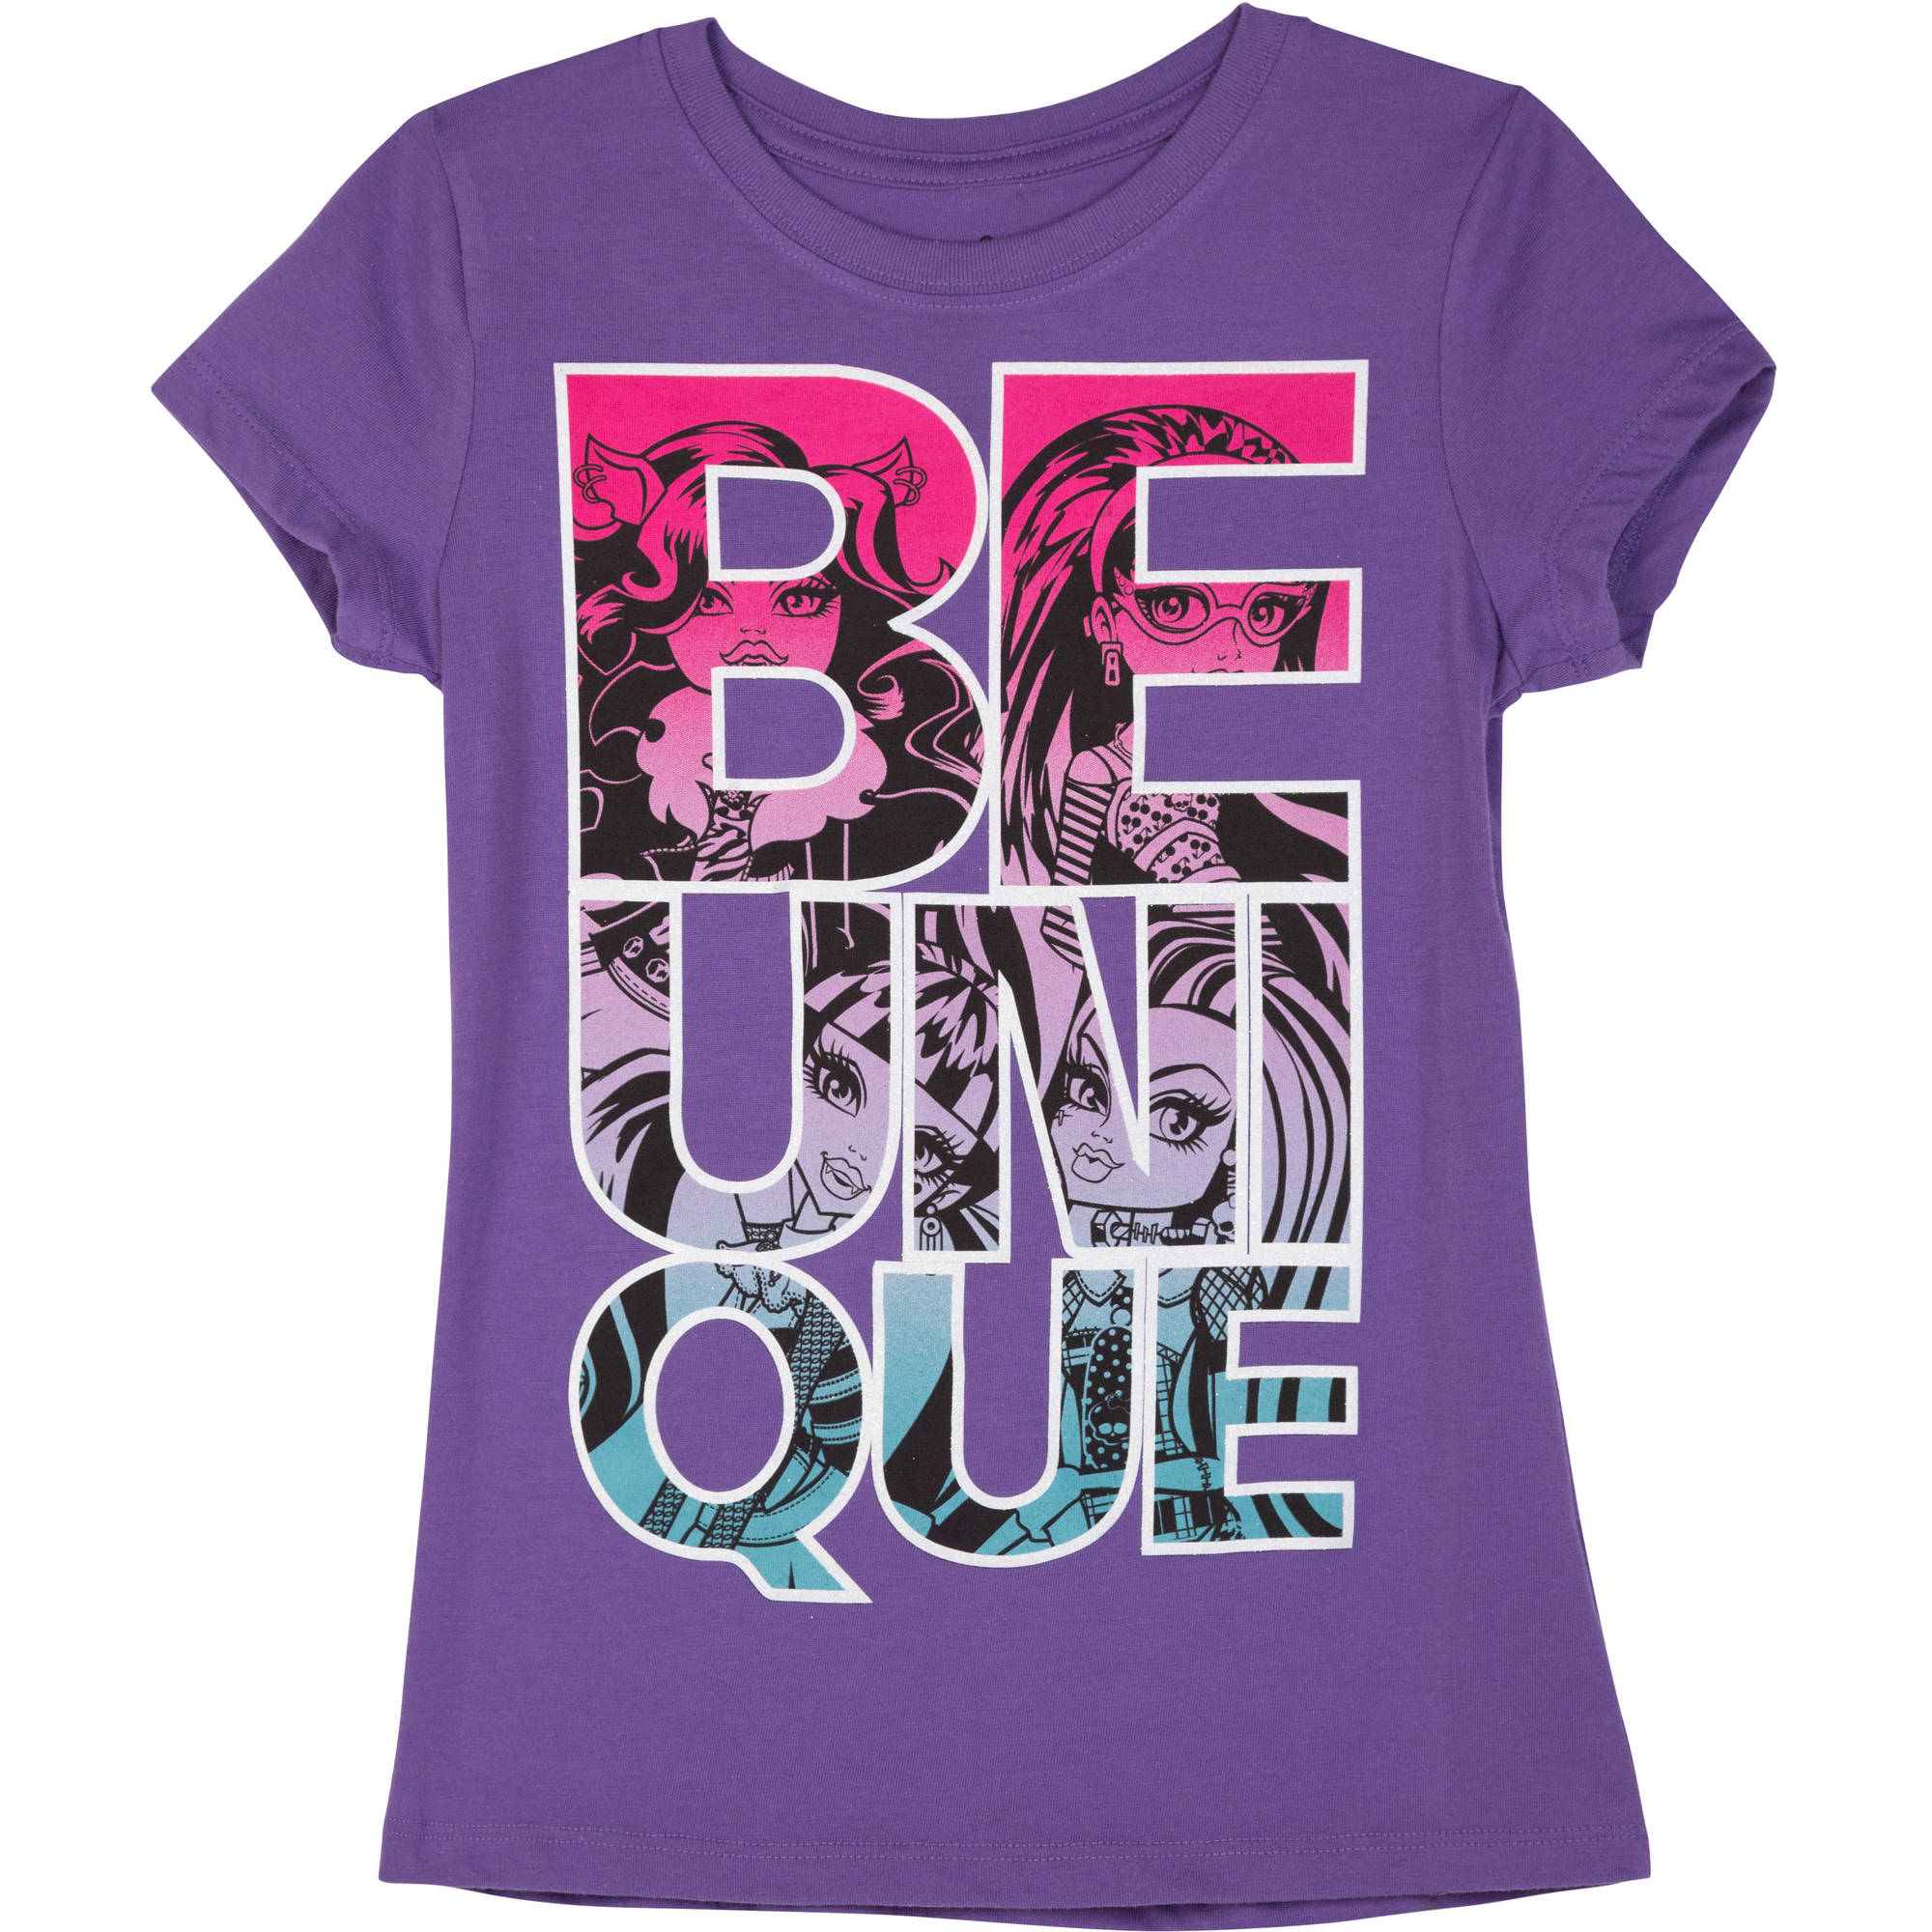 Monster High Unique Monster High Type Girls' Short Sleeve Crew Neck Graphic Tee